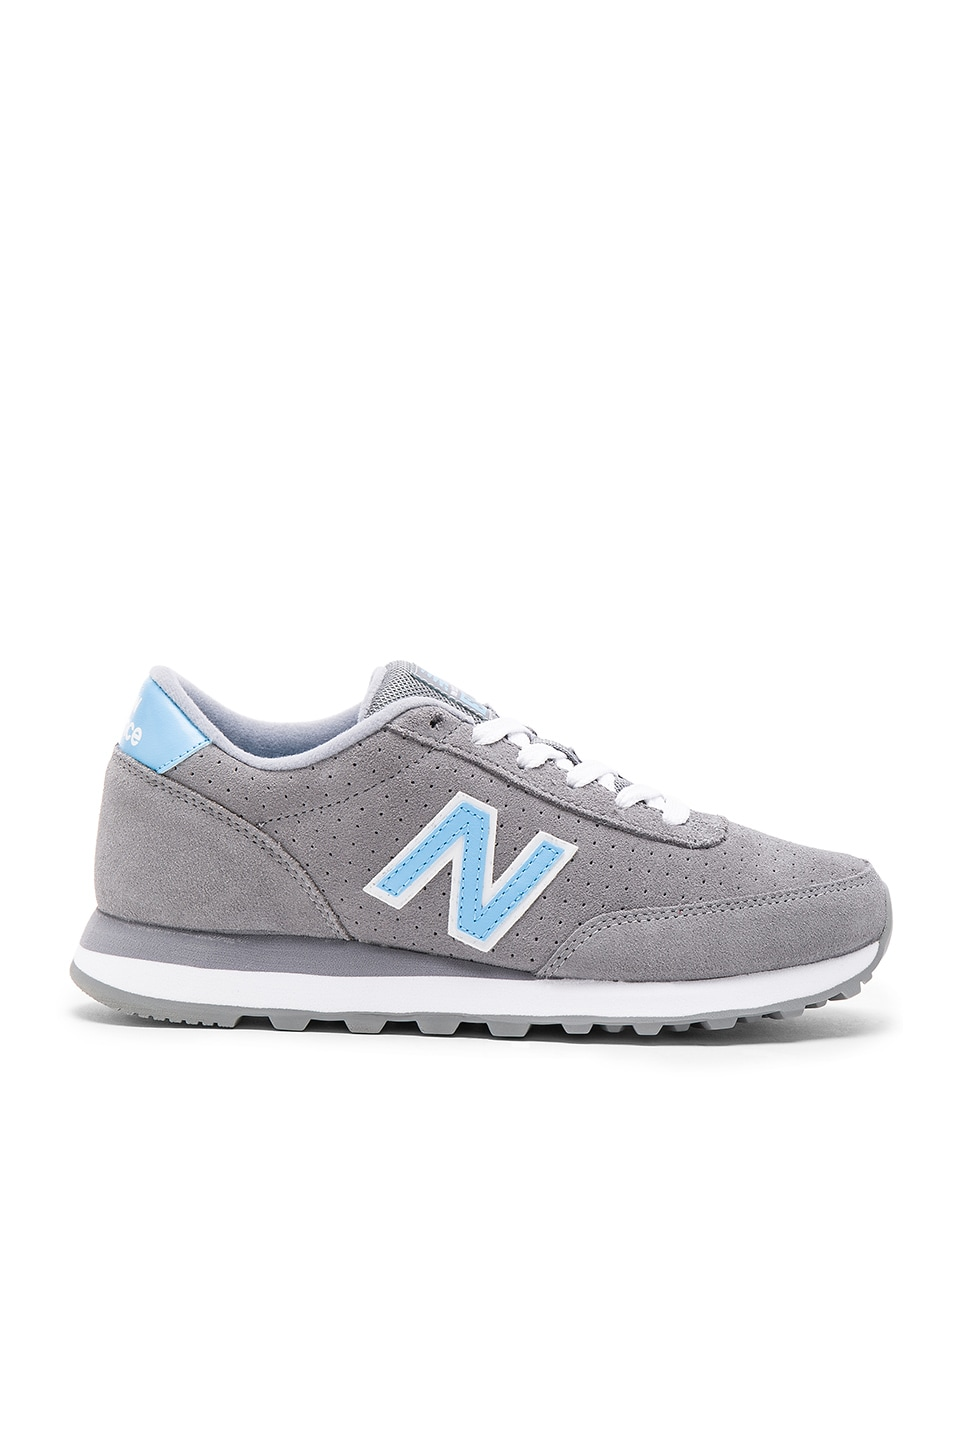 New Balance Classics All Suede Collection Sneaker in Grey & Blue